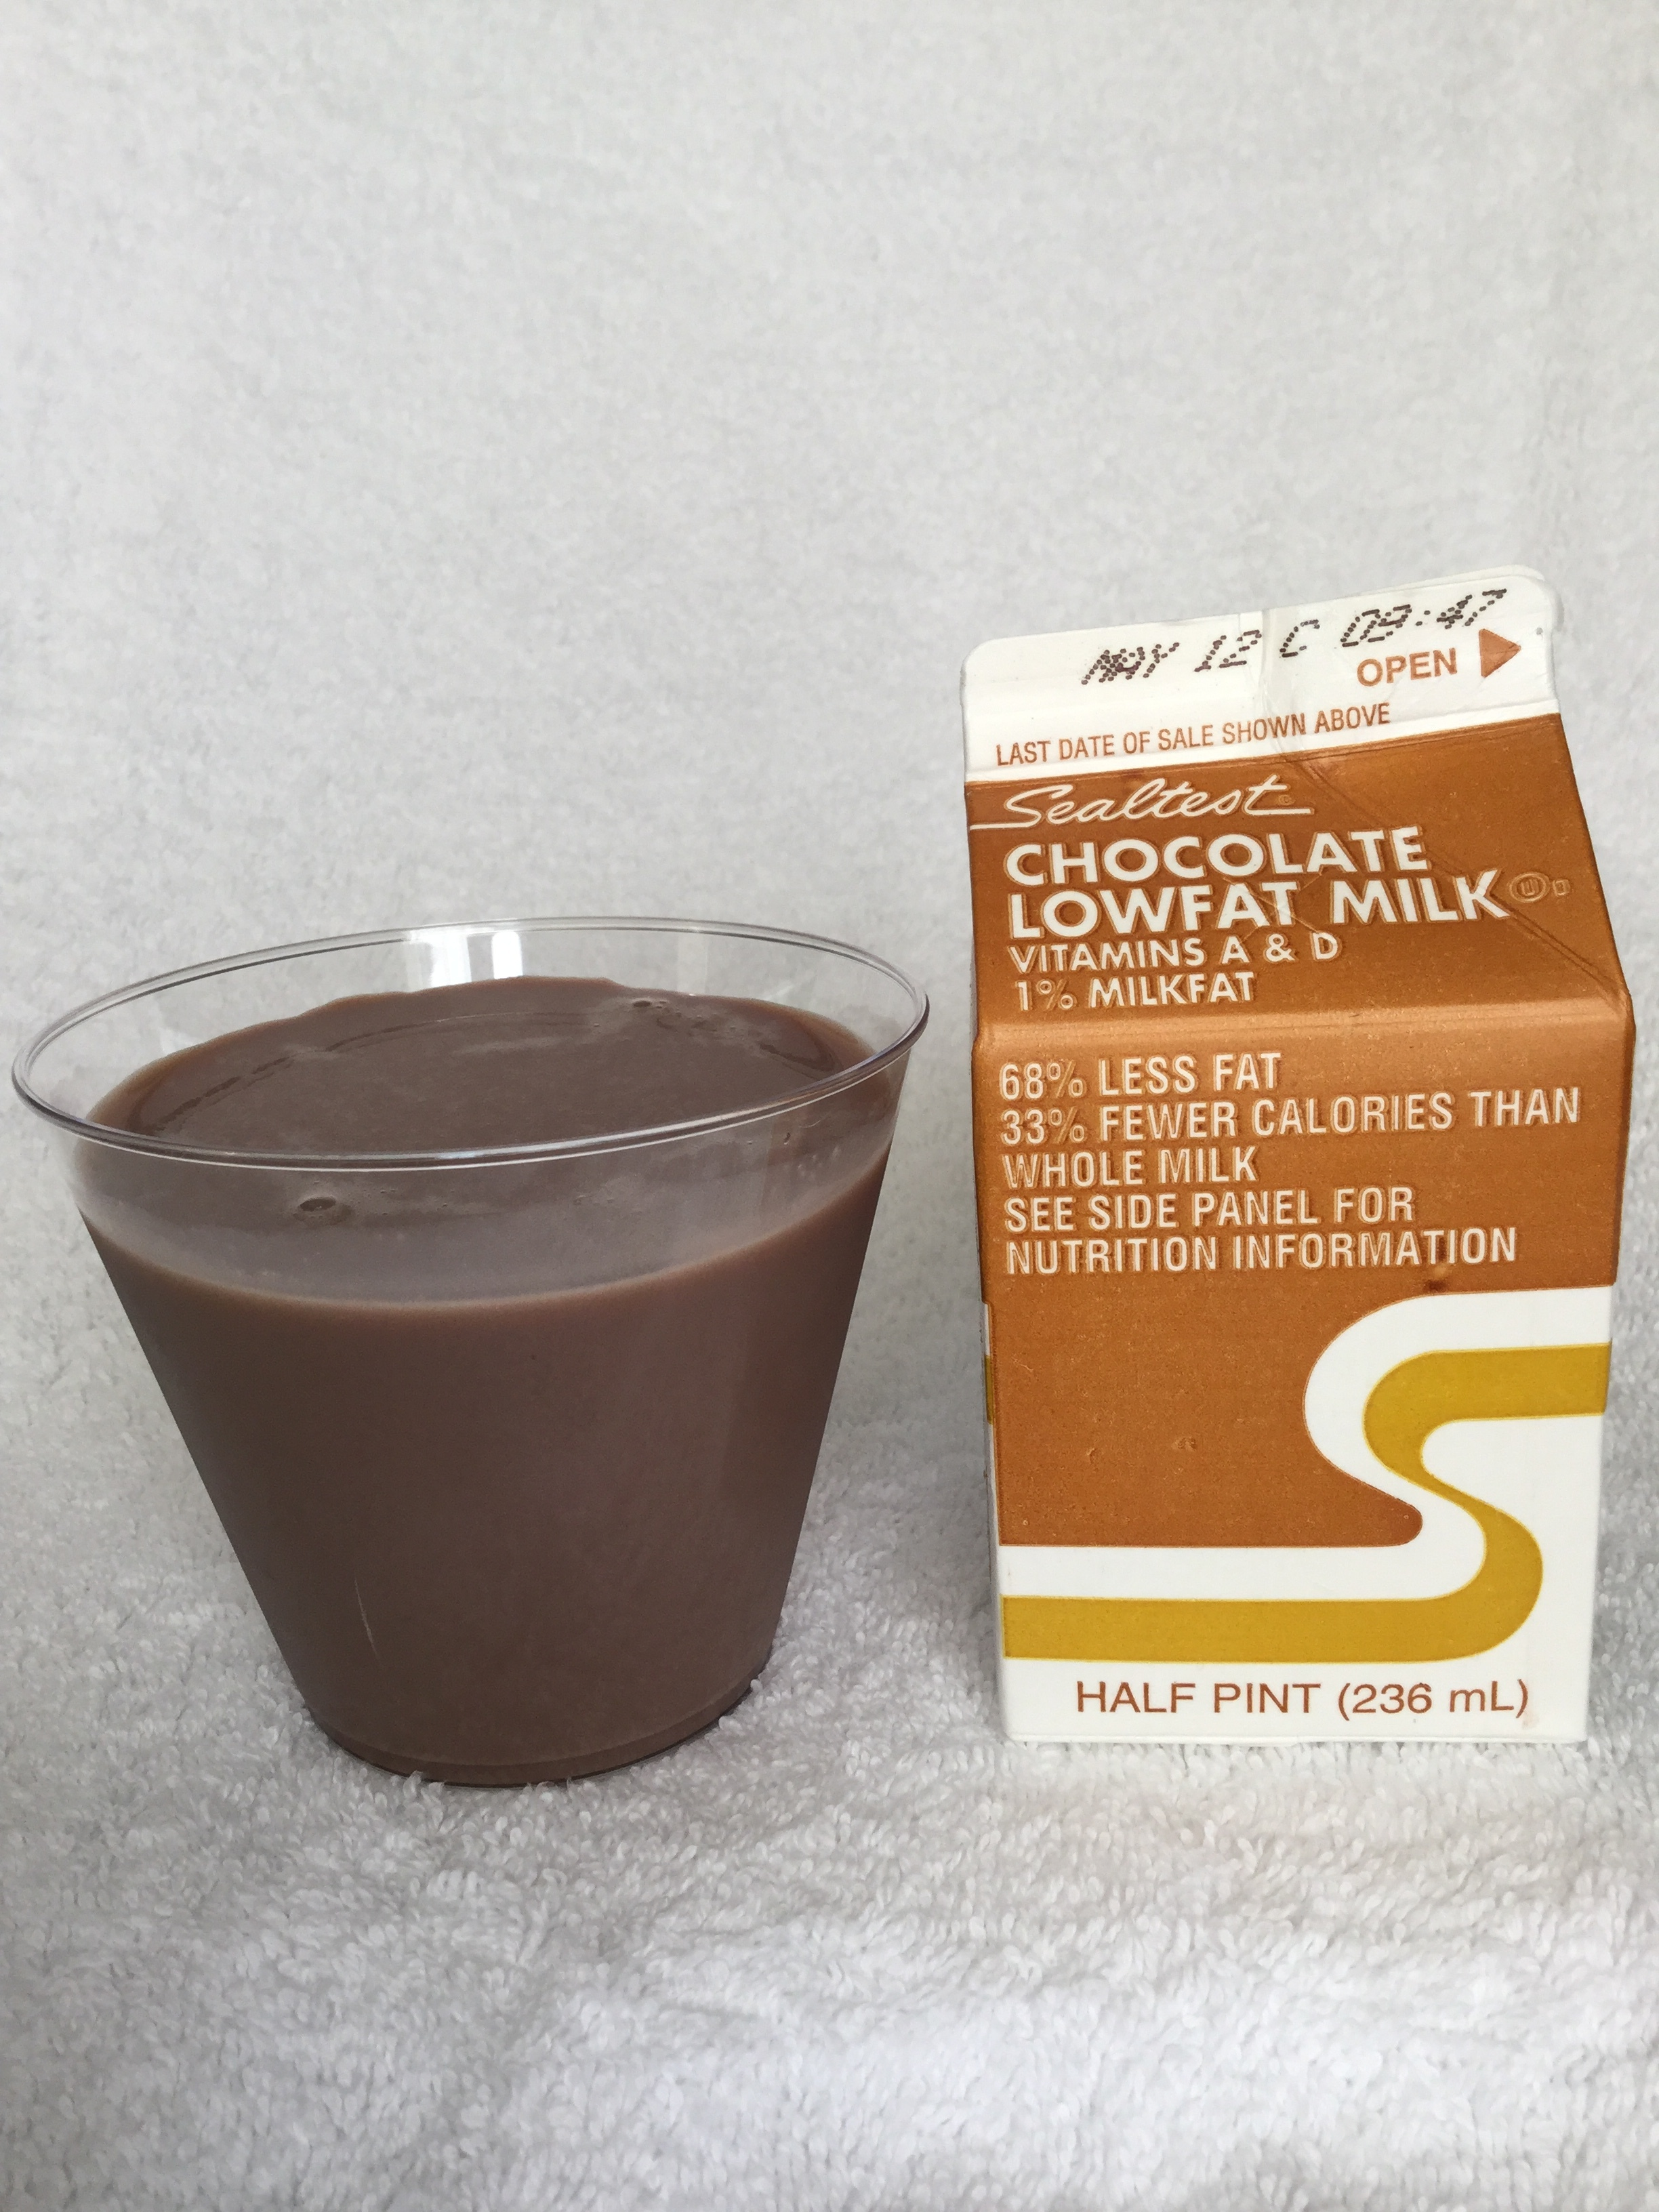 Sealtest Chocolate Lowfat Milk Cup